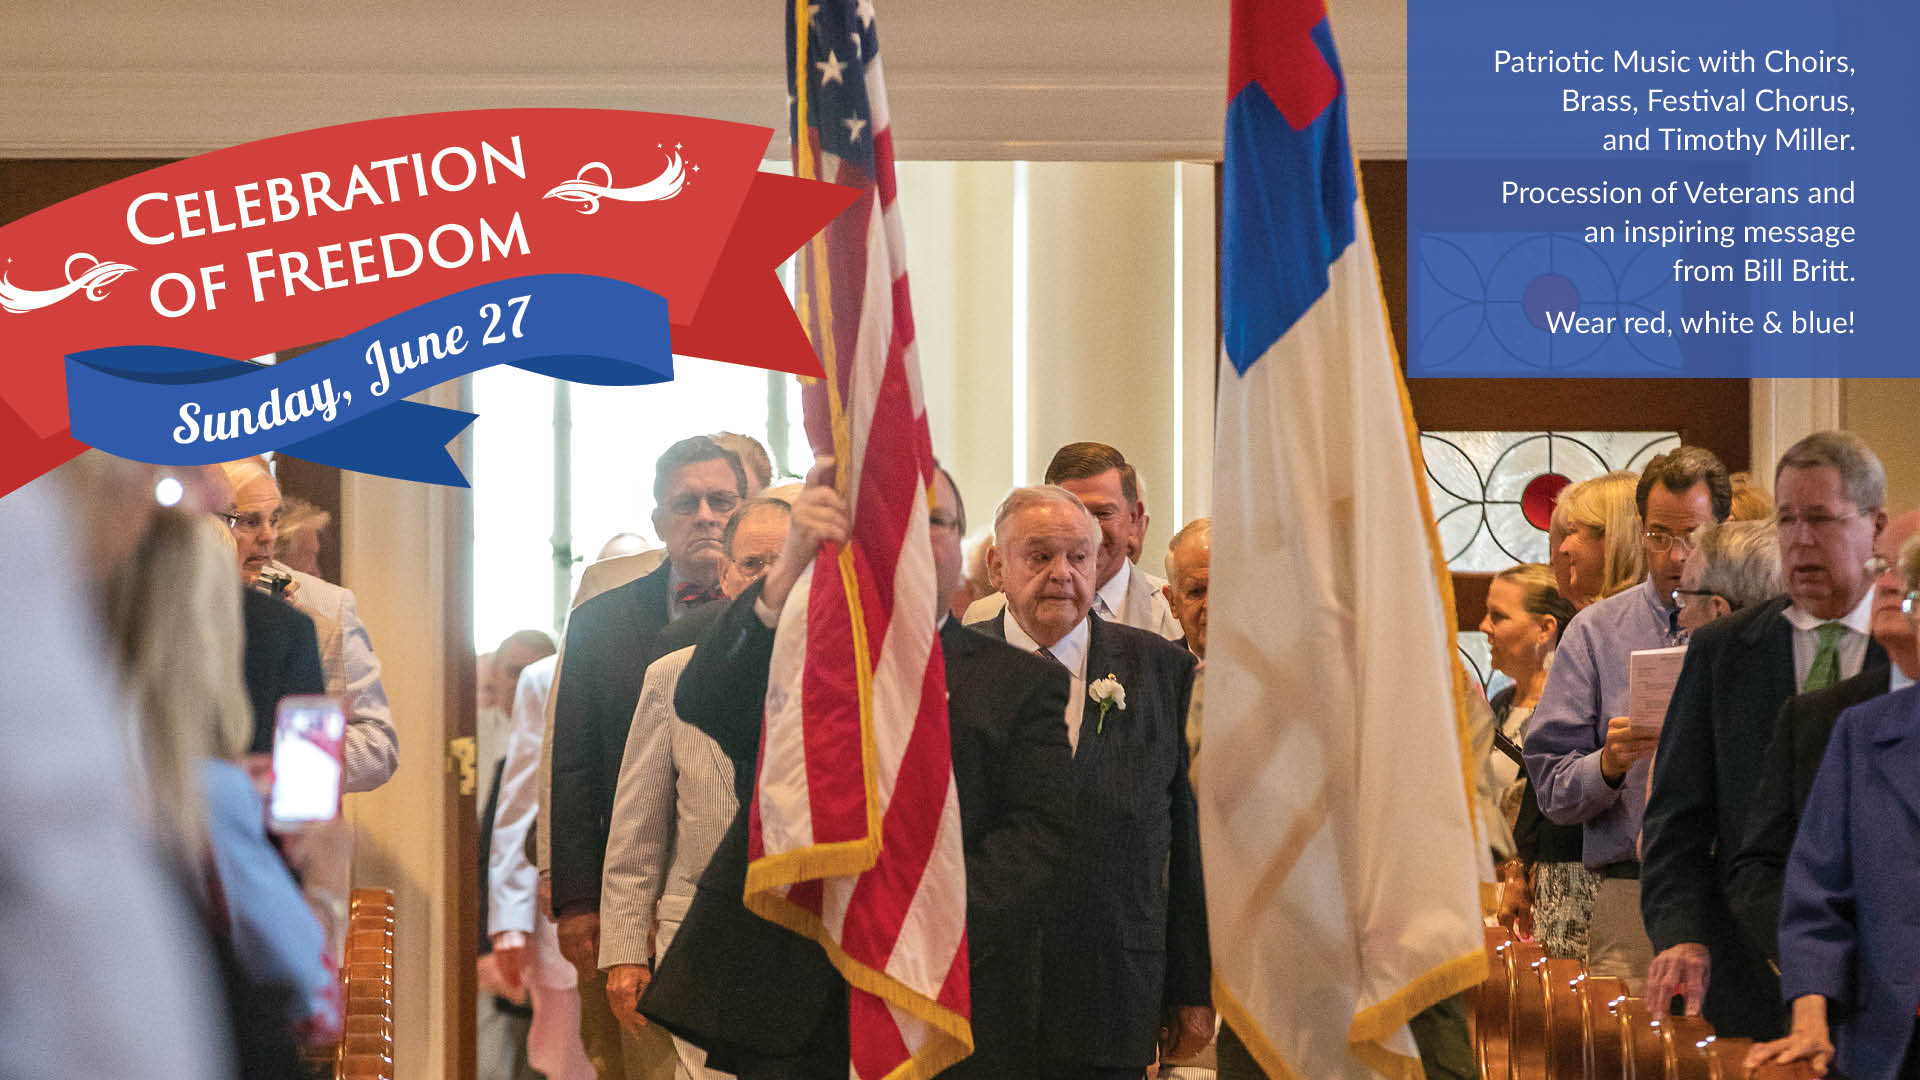 Celebration of Freedom Procession of Veterans